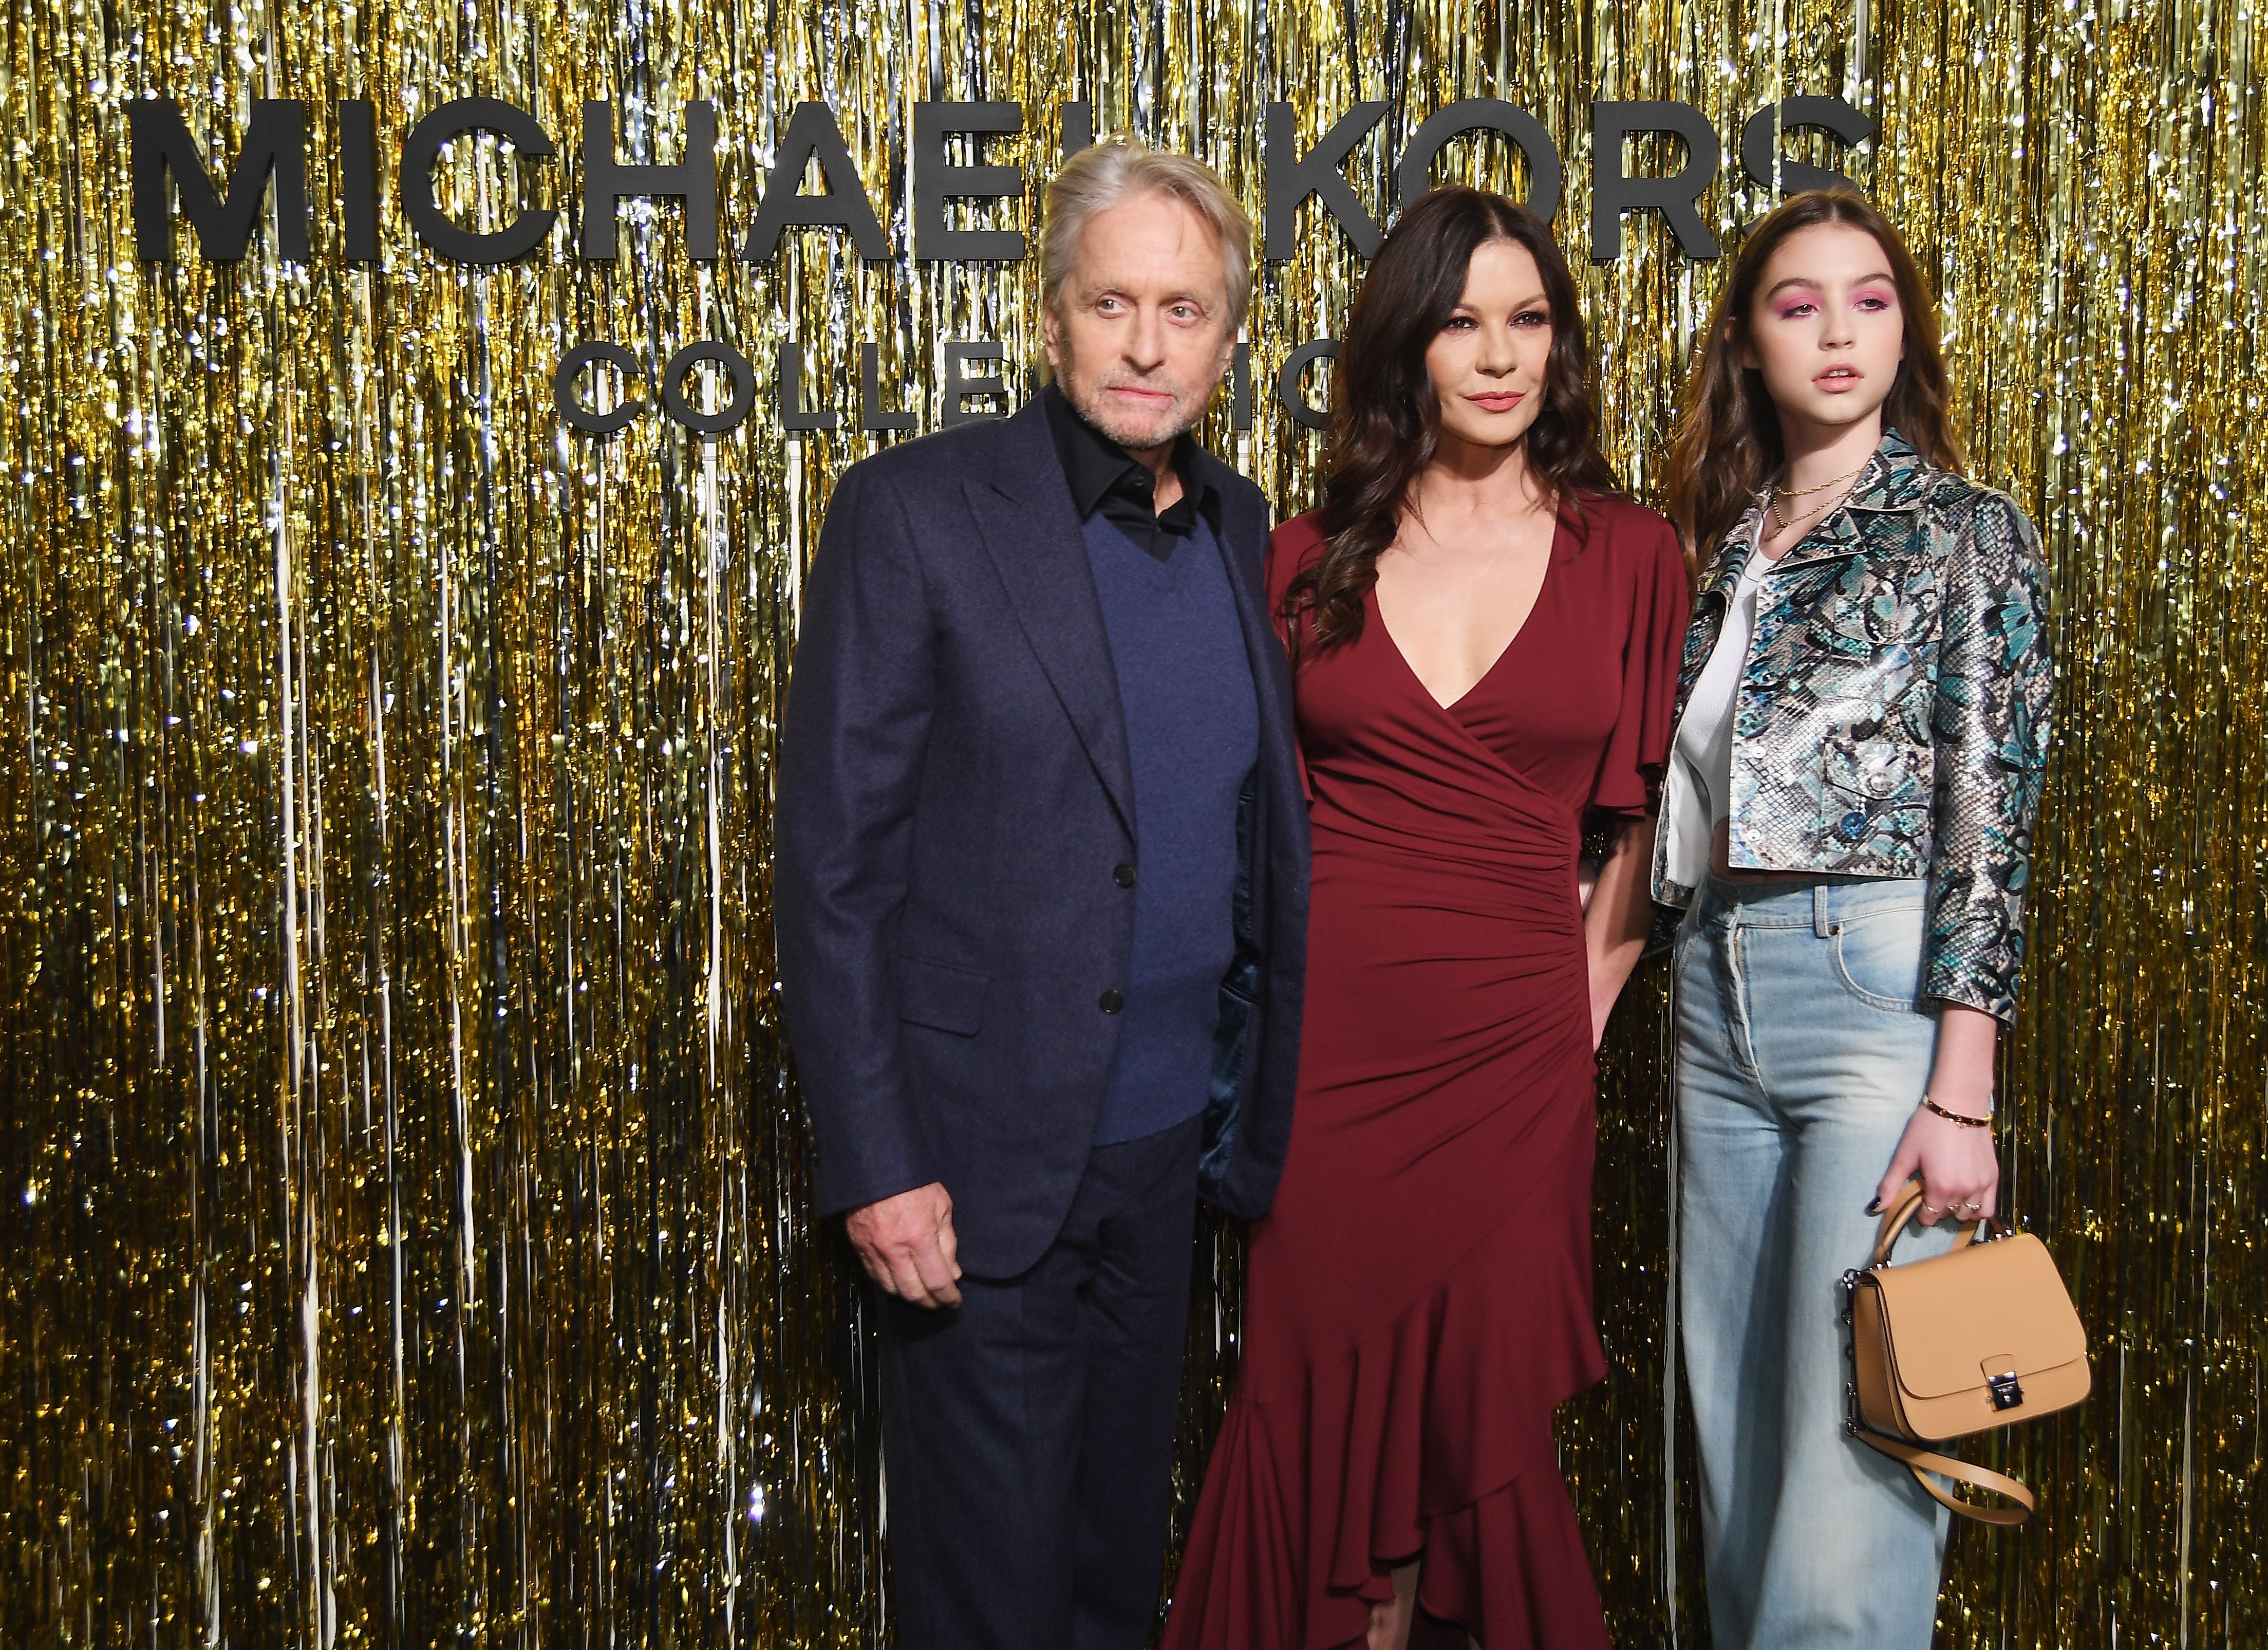 Michael Douglas, and his wife Catherine Zeta-Jones, and their daughter Carys Zeta Douglas attend the Michael Kors Collection Fall 2019 Runway Show at Cipriani Wall Street on February 13, 2019 in New York City | Photo: Getty Images